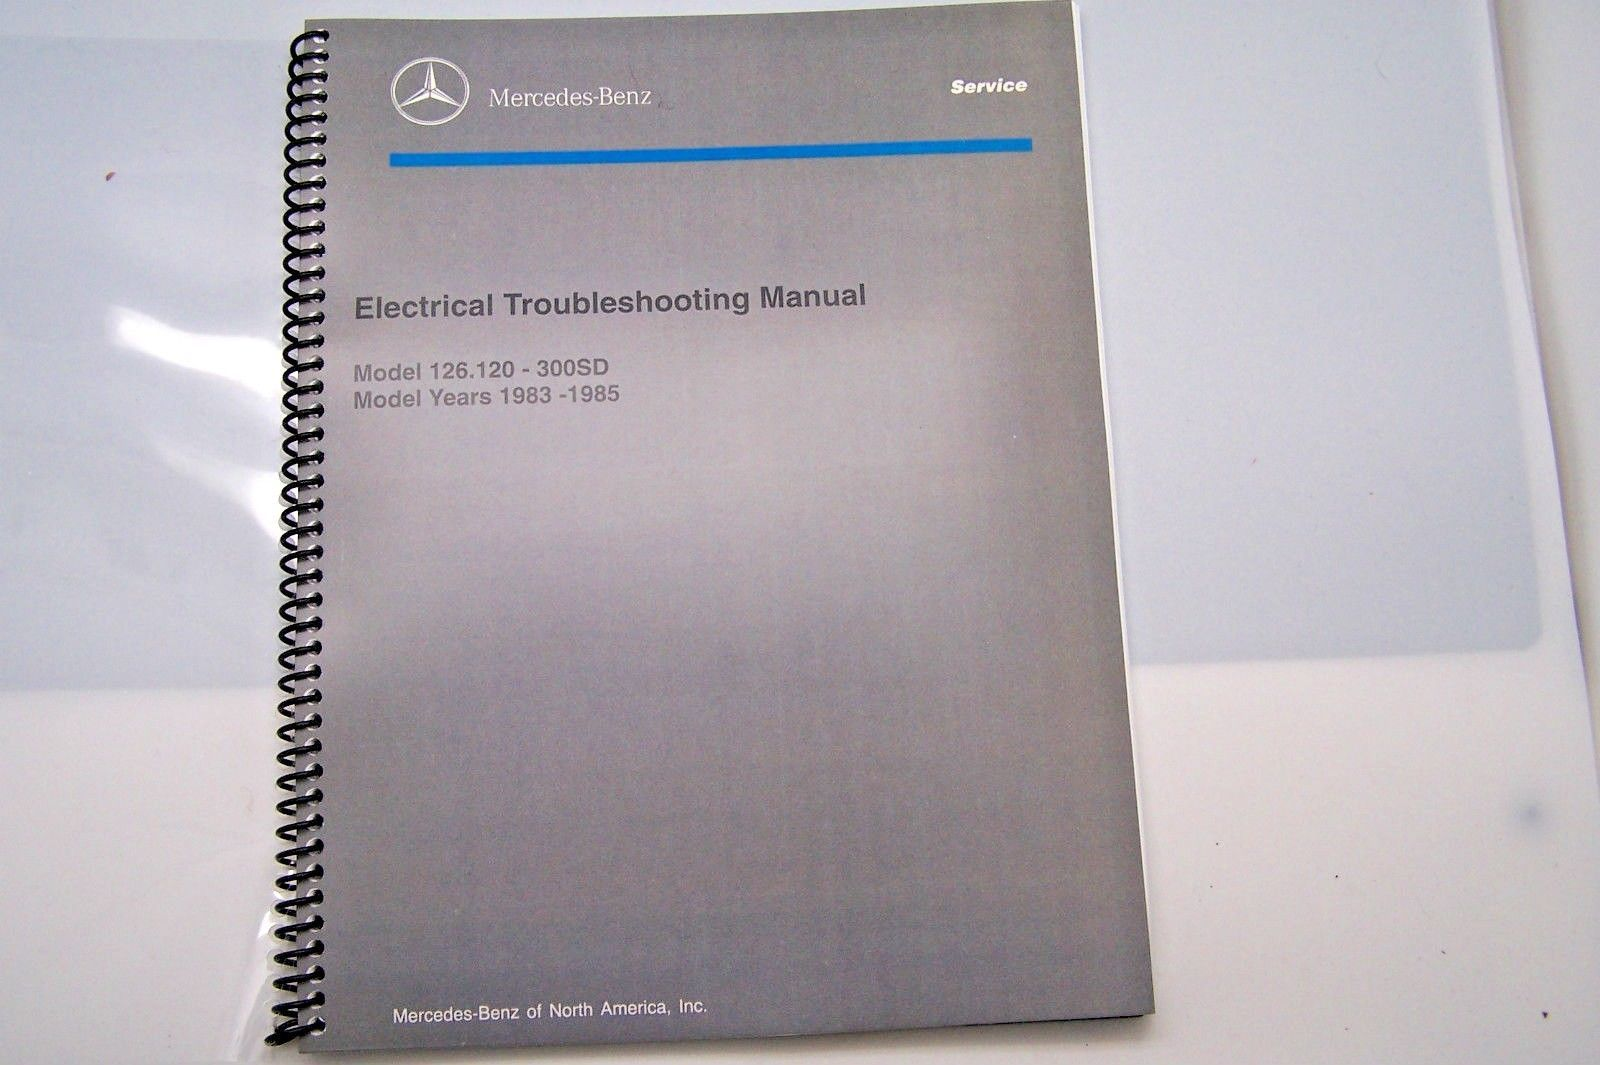 1985 1983 mercedes 300sd owners electrical and 50 similar items rh bonanza com 1981 300SD 1984 mercedes 300sd owners manual